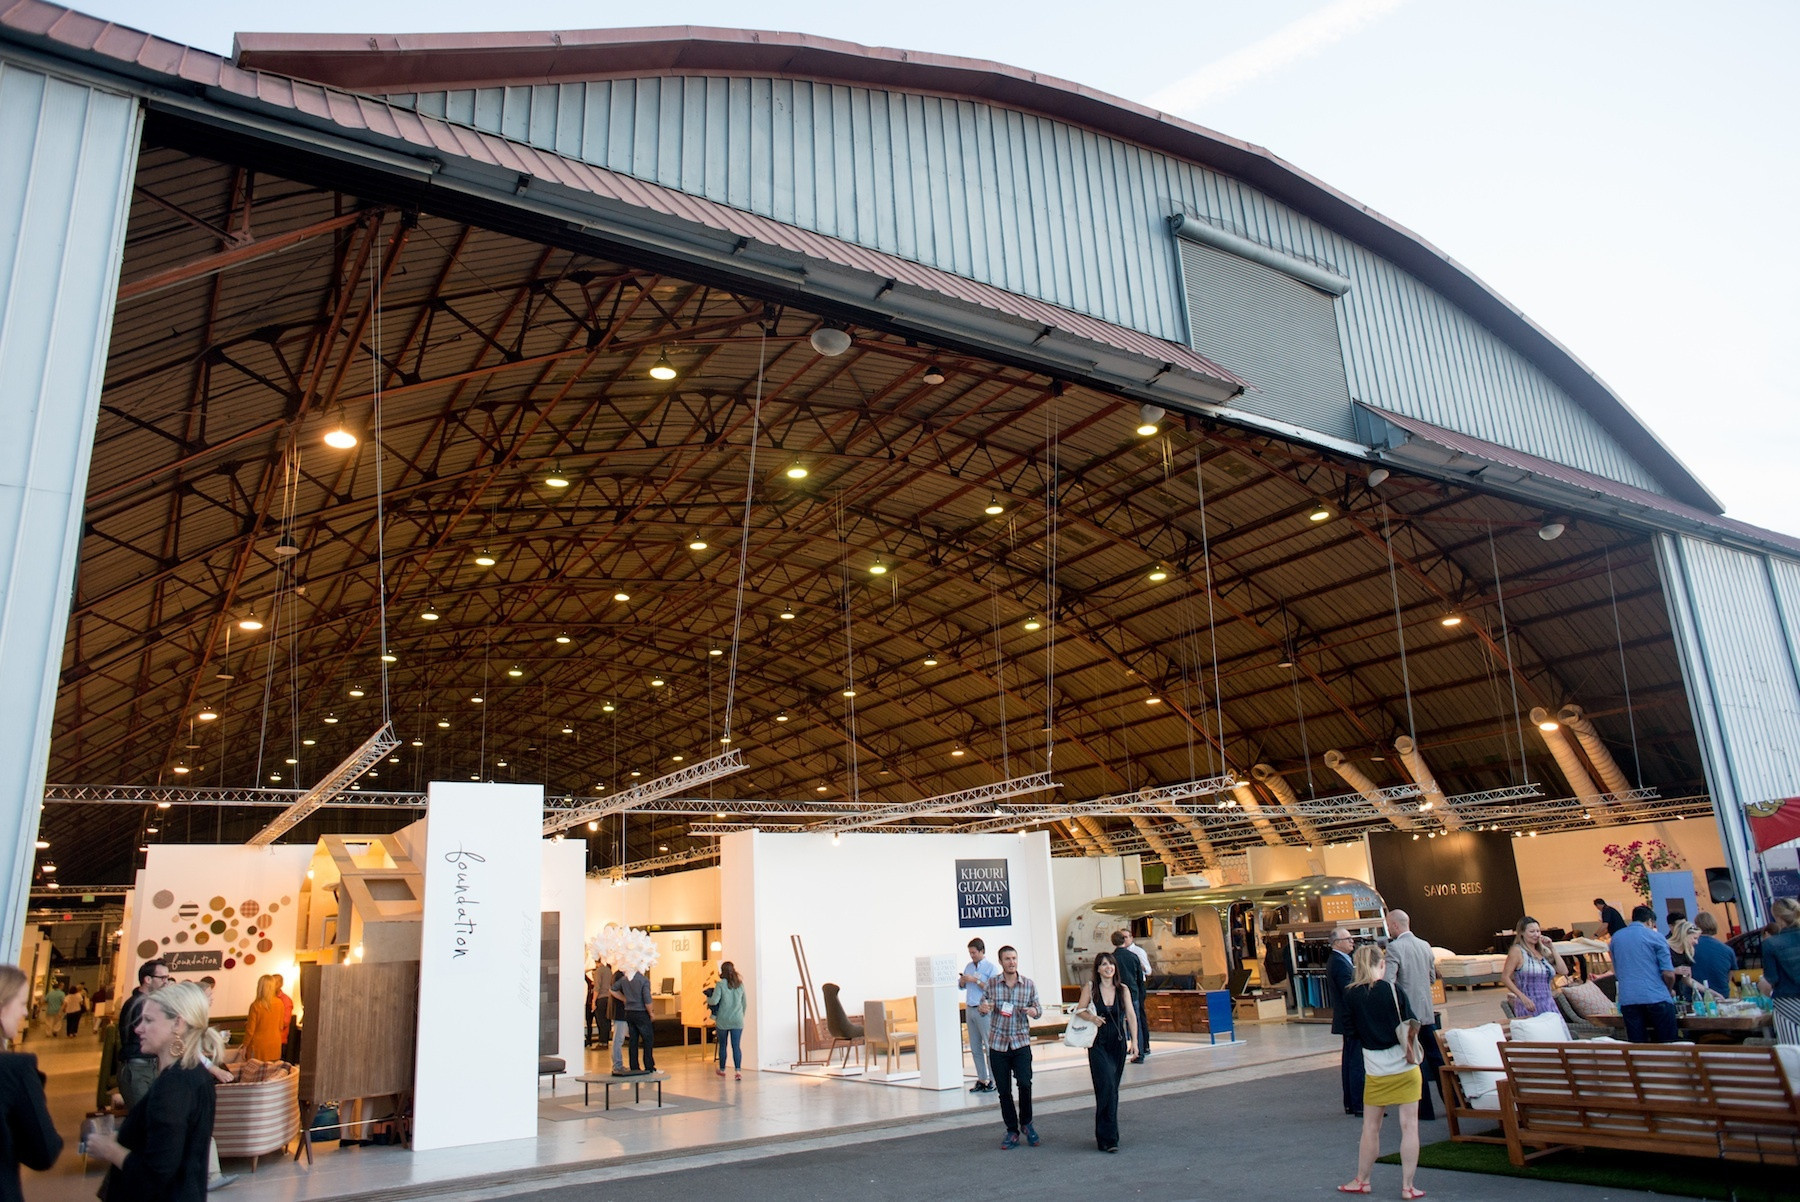 Westedge Design Fair Returns To Barker Hangar On Oct 16